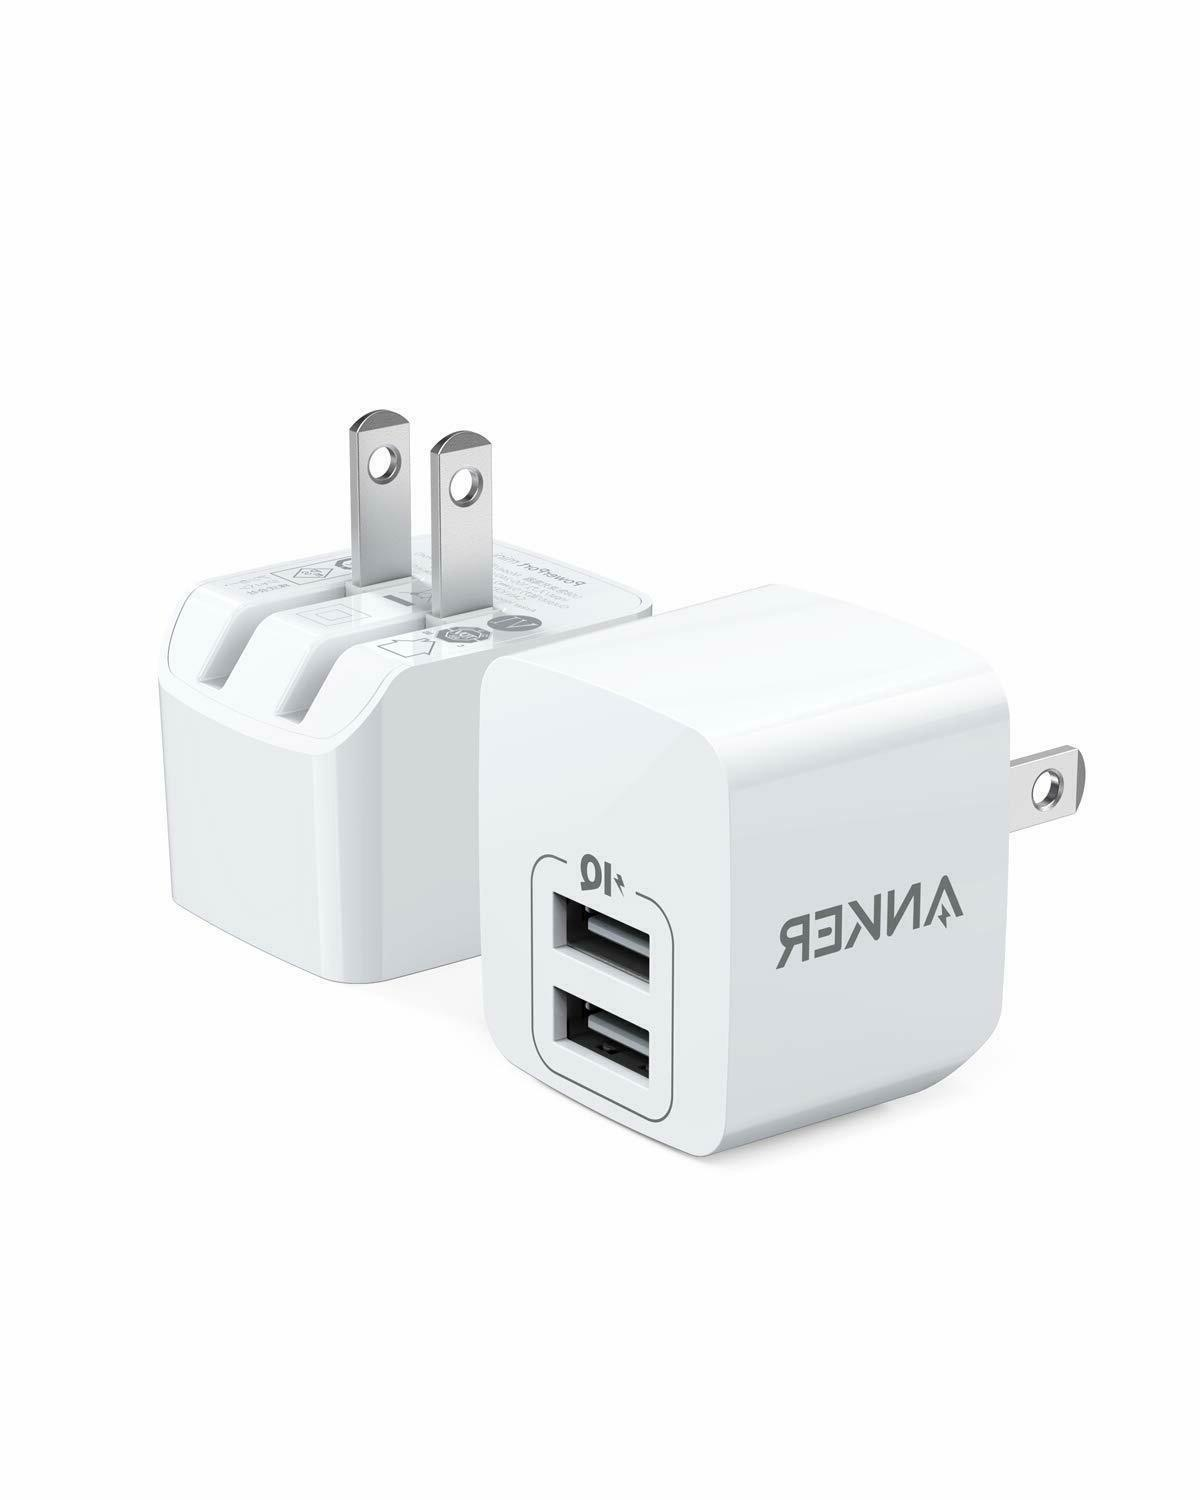 USB Charger, Anker 2-Pack Dual Port 12W Wall Charger with Fo